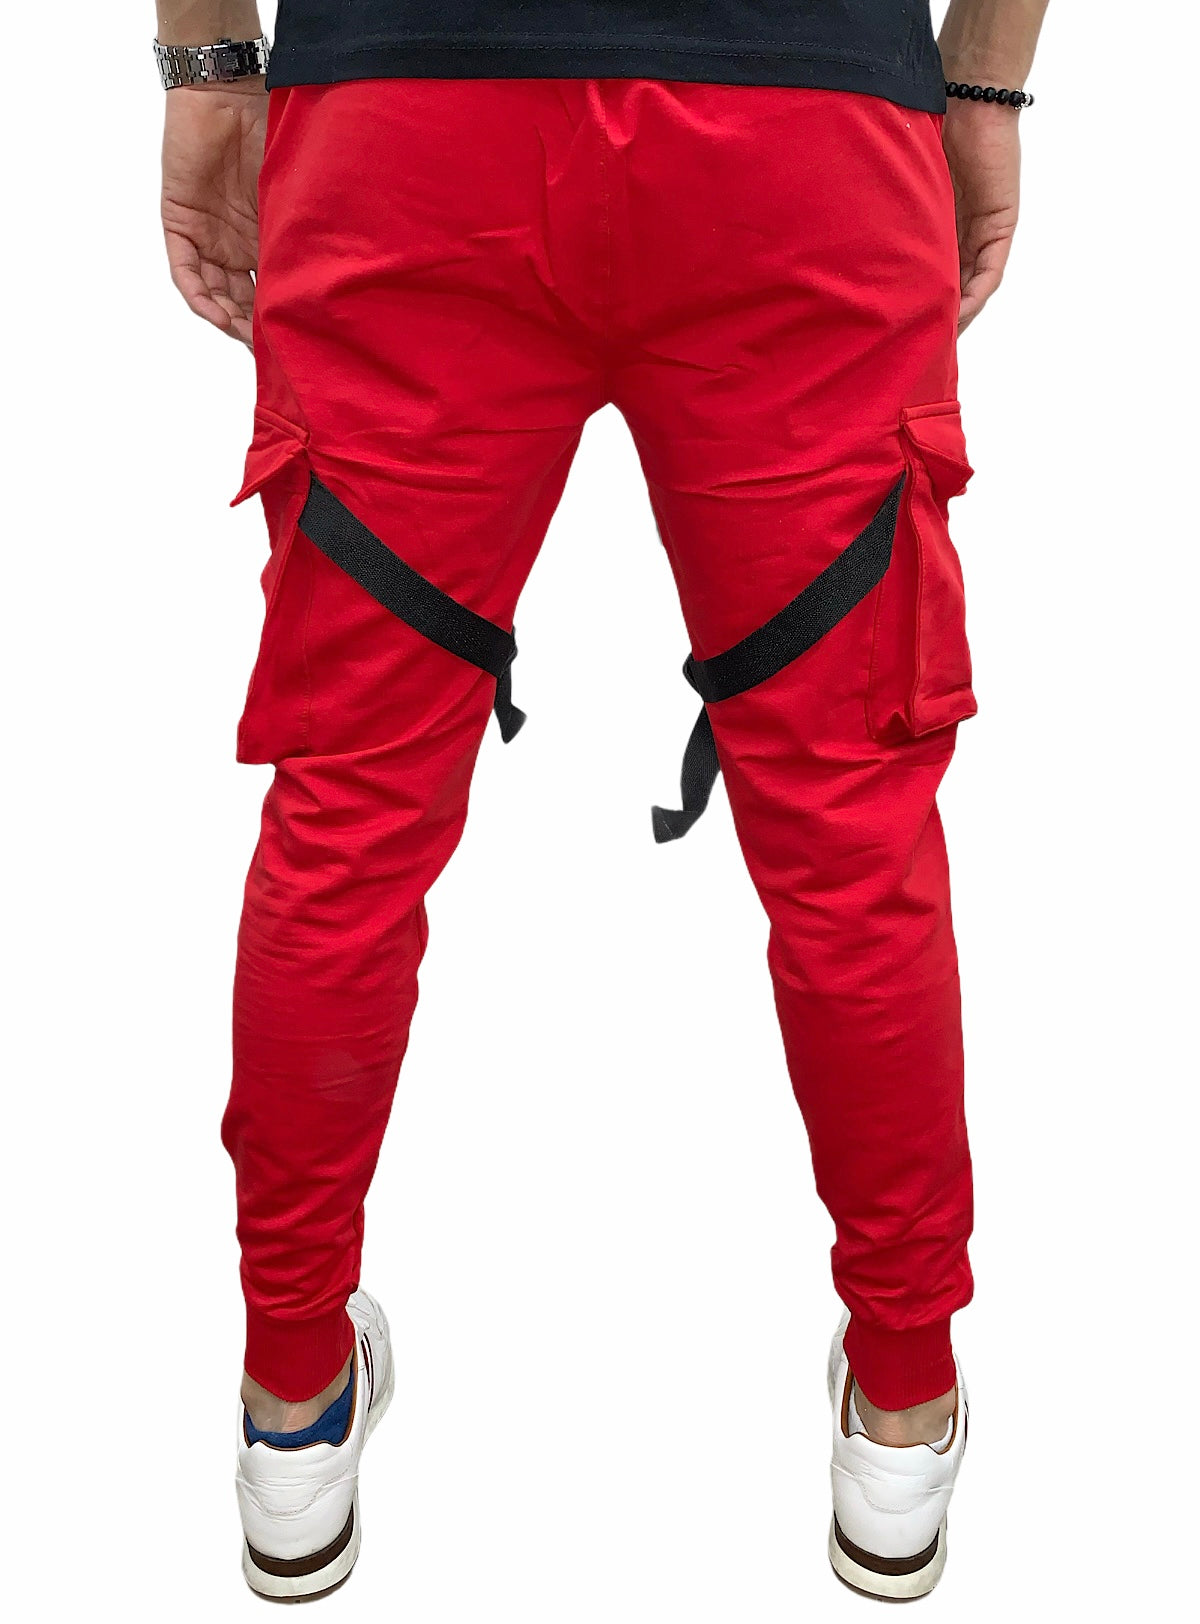 Buyer's Choice Pants - Straps - Red - P6613